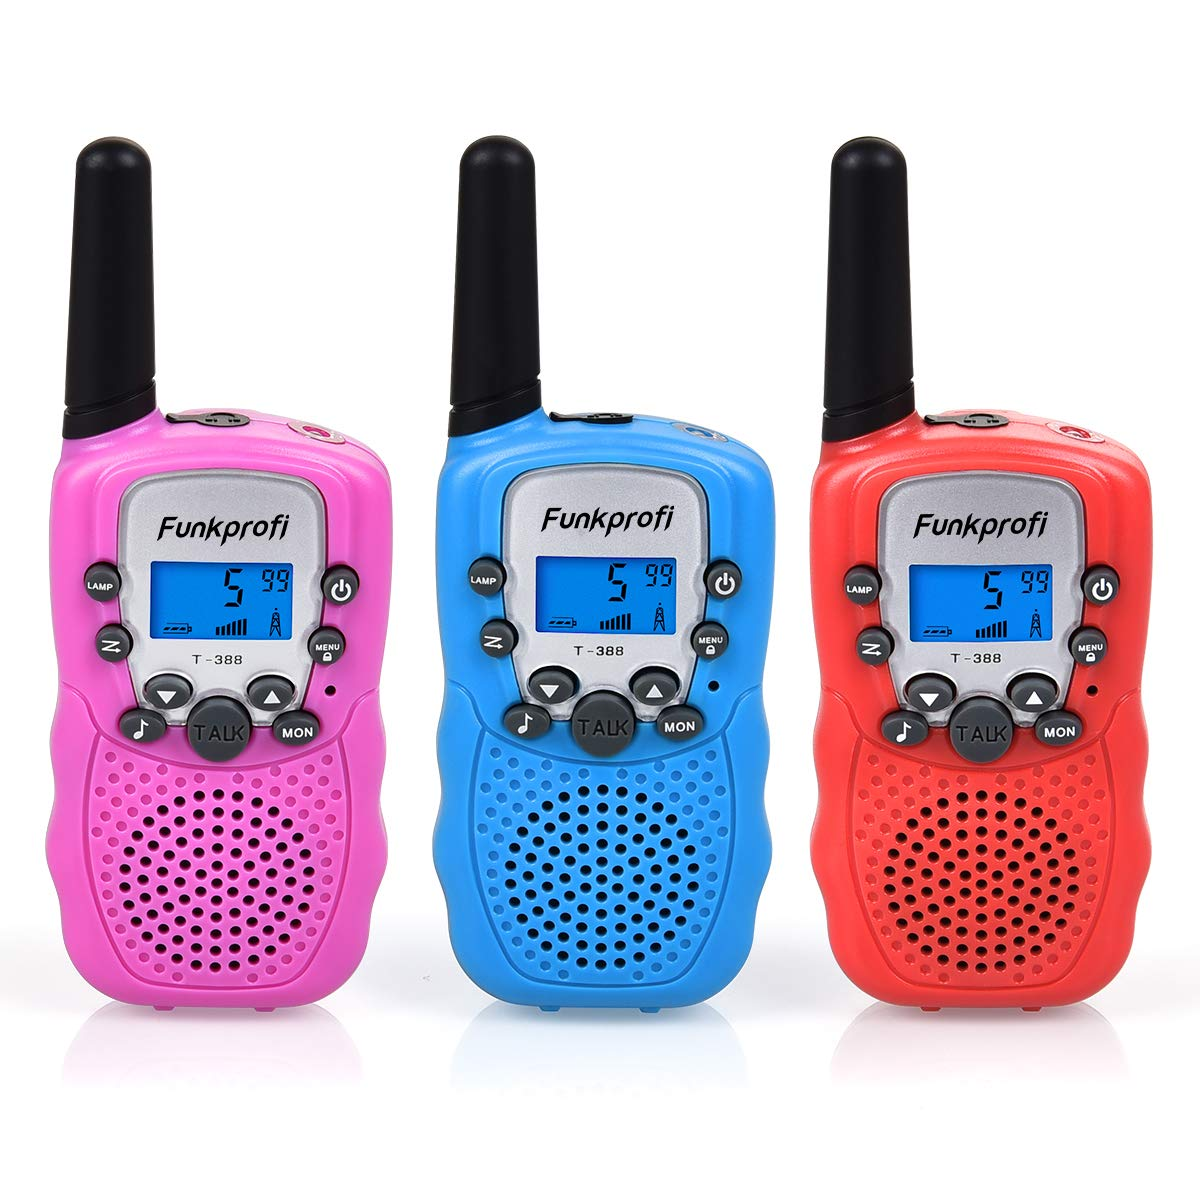 Funkprofi 3 Pack Walkie Talkies for Kids 22 Channel Uhf FRS/GMRS 2 Way Radio, Toy Gifts for Boys and Girls Birthday, Outdoor Adventure, Camping, Hiking